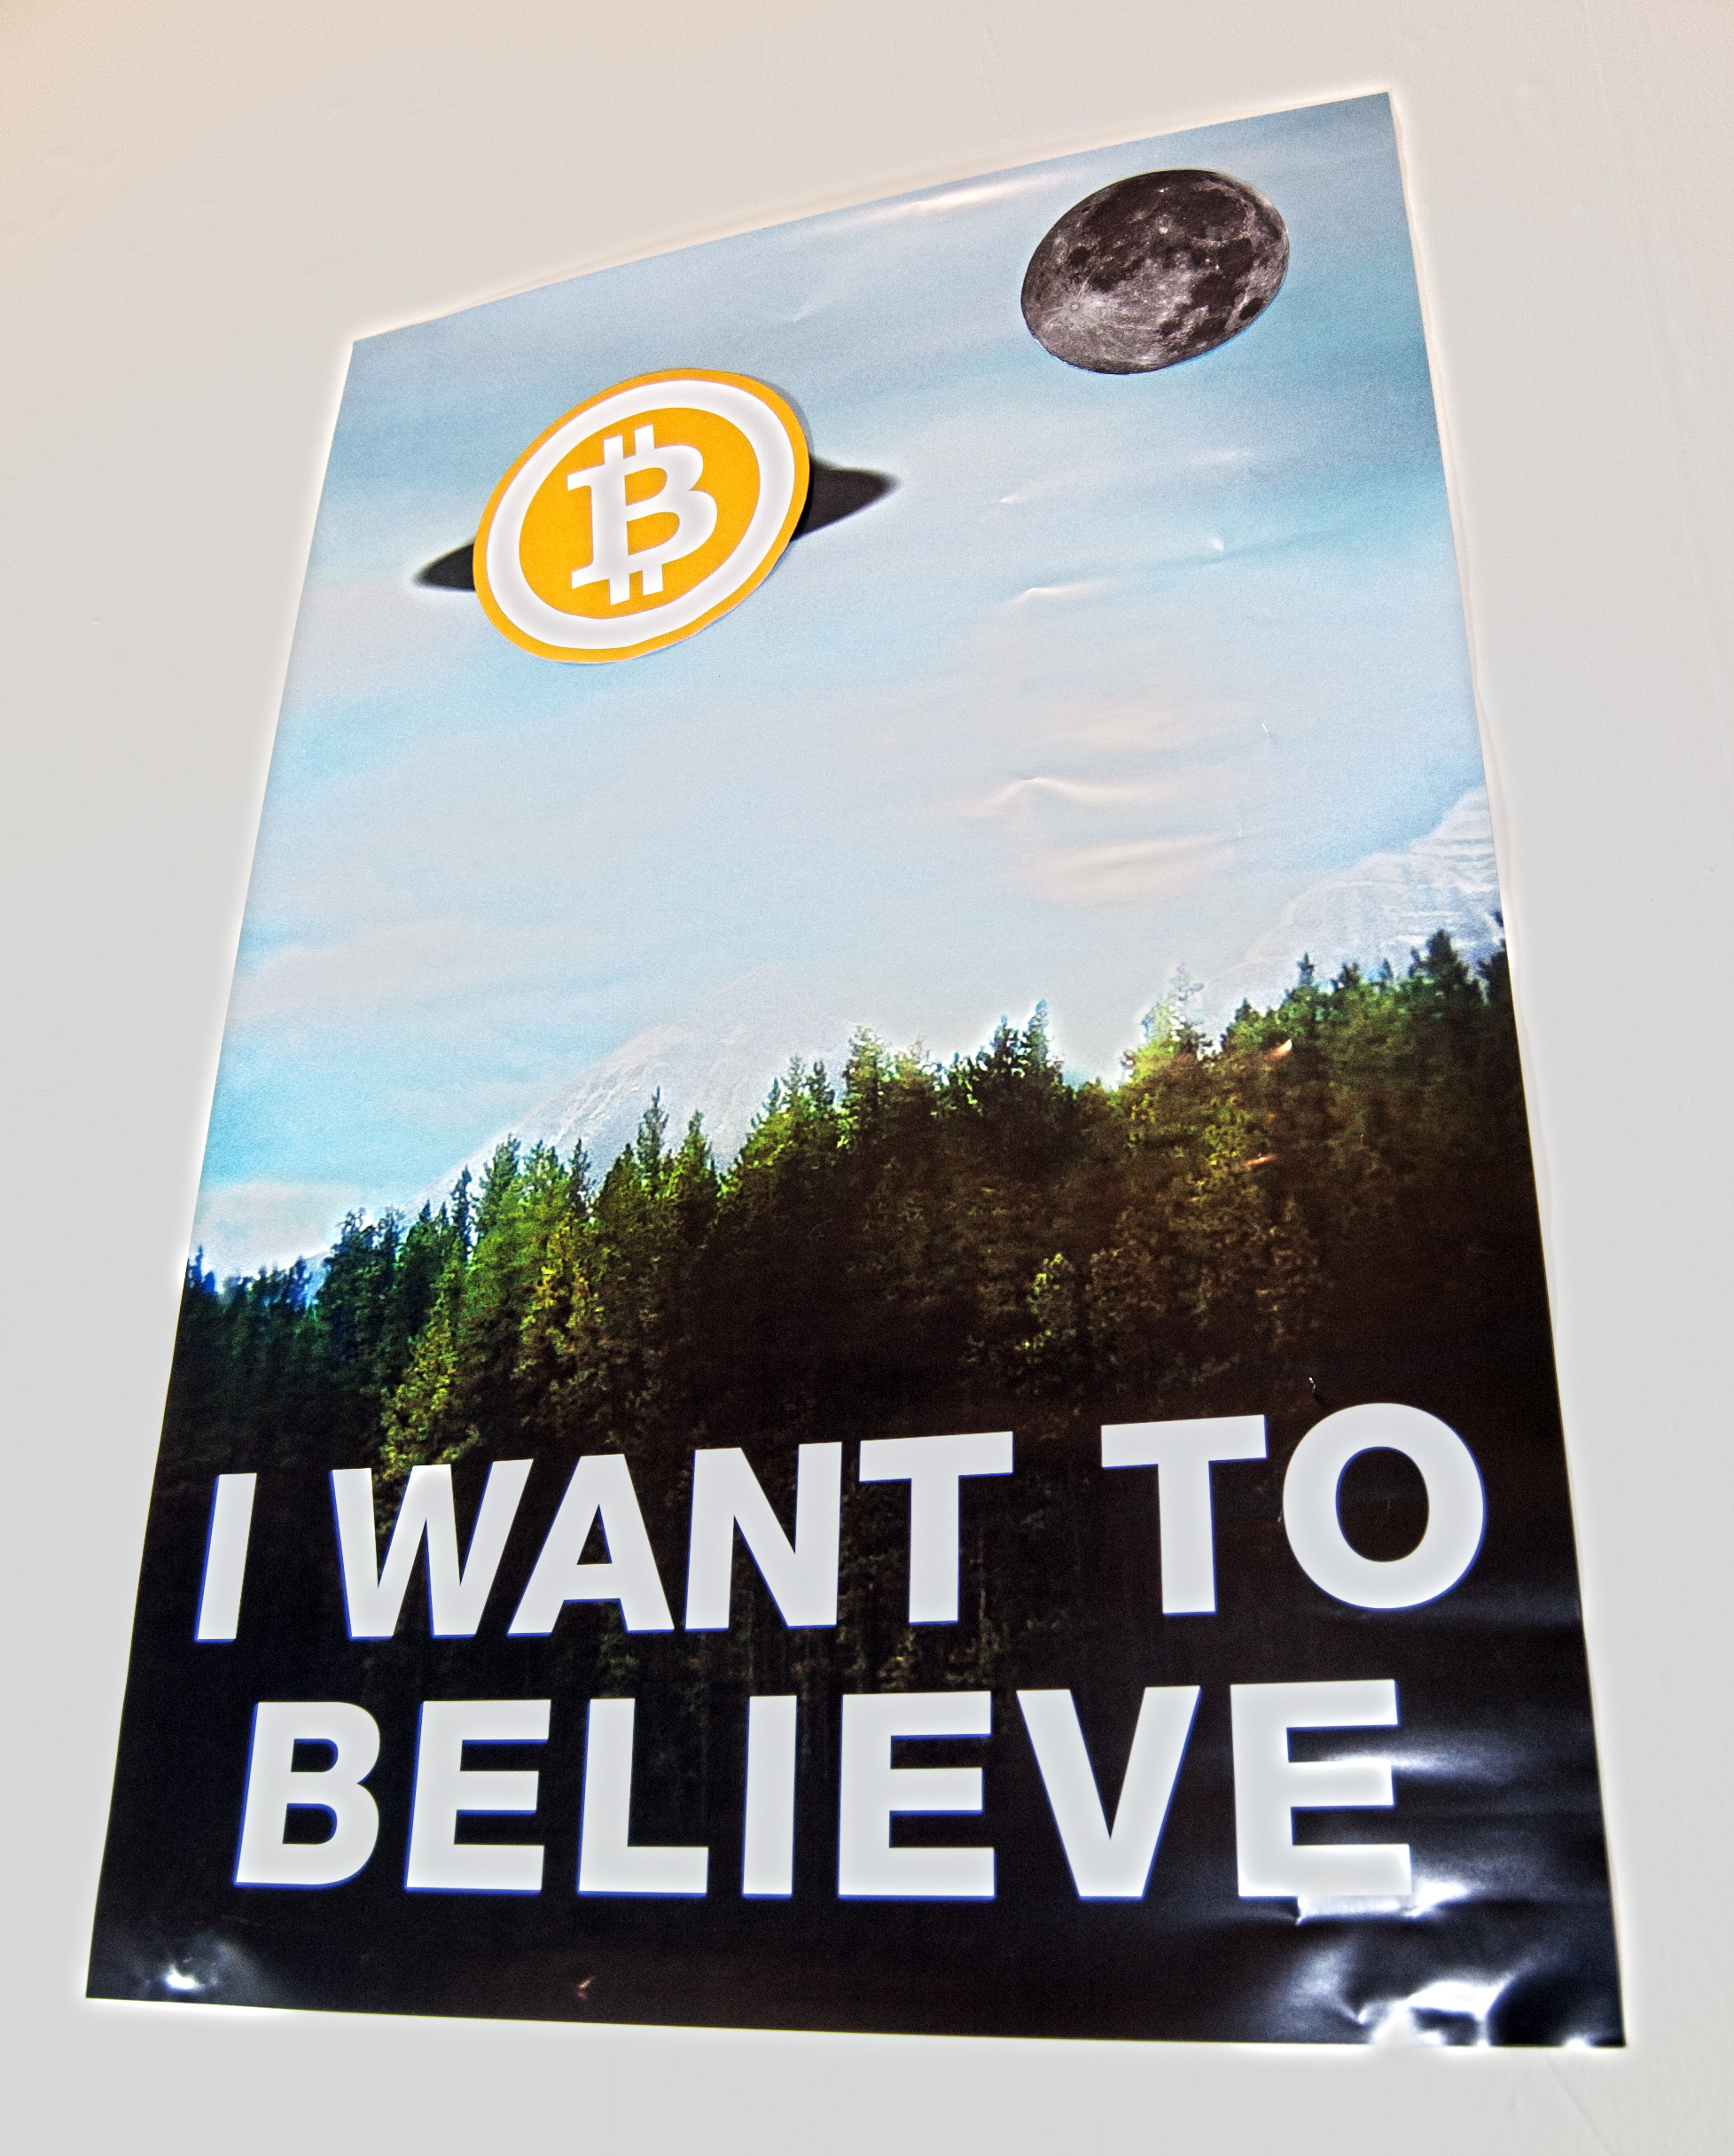 Believe in Bitcoin mod